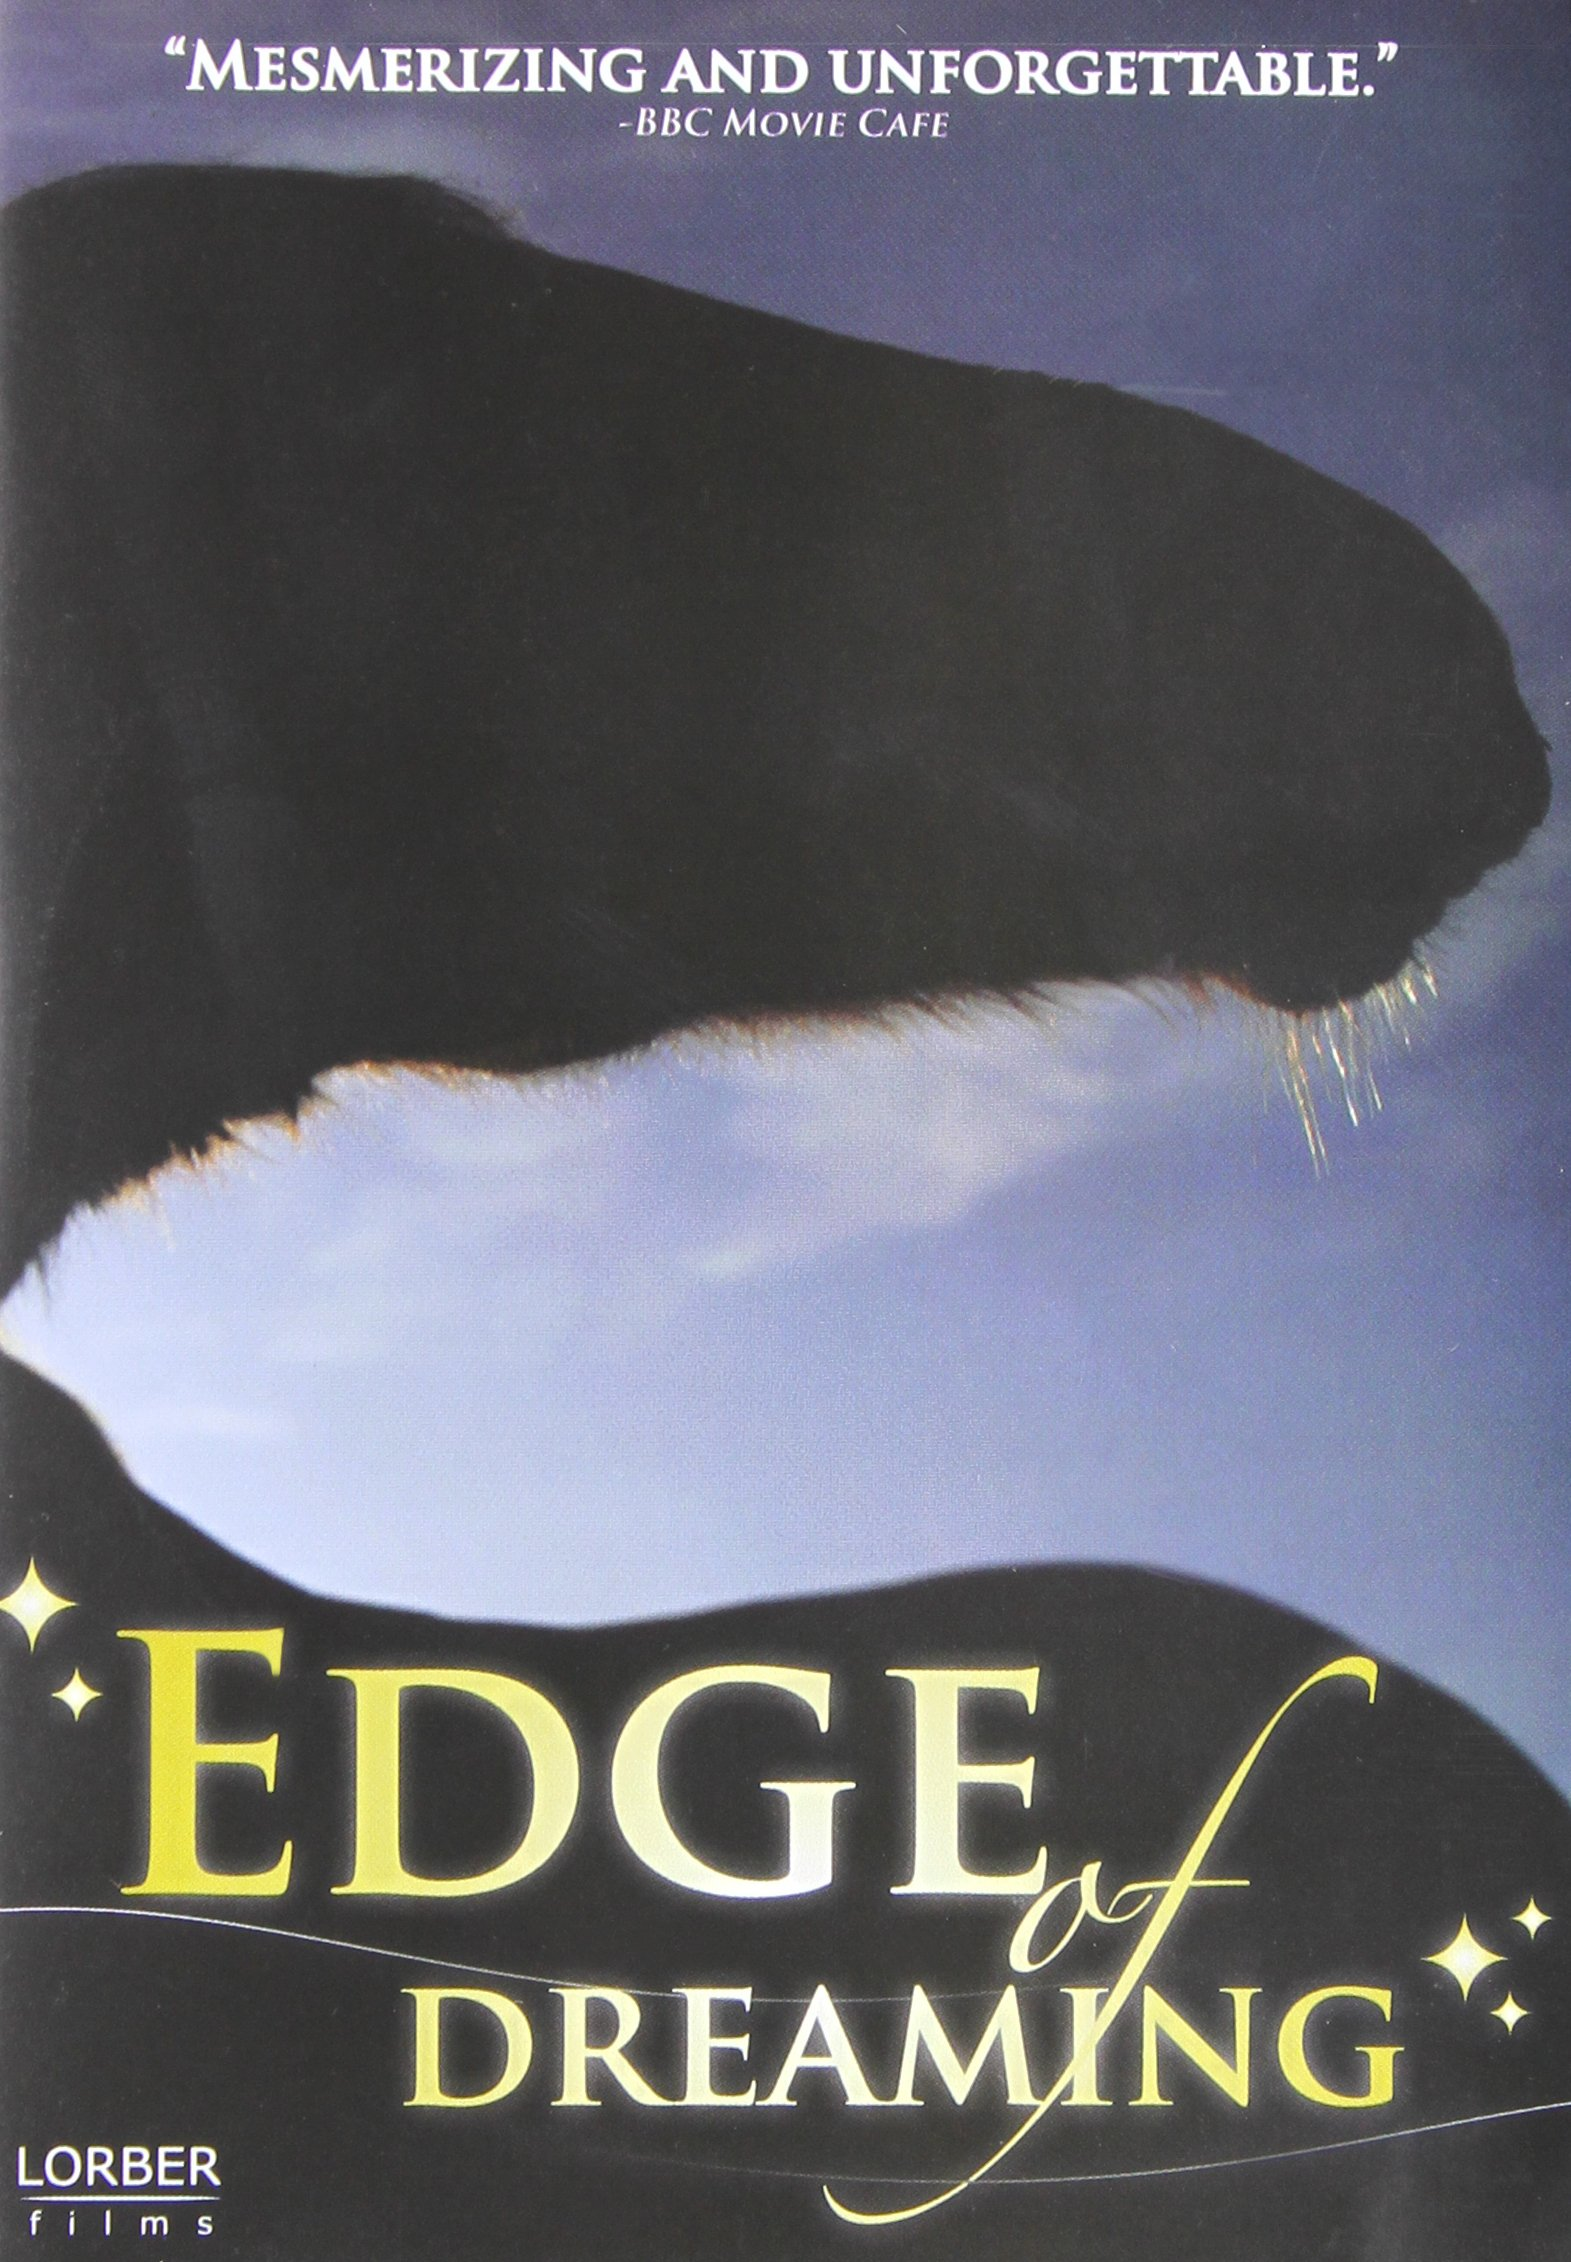 DVD : Amy Hardie - The Edge Of Dreaming (DVD)